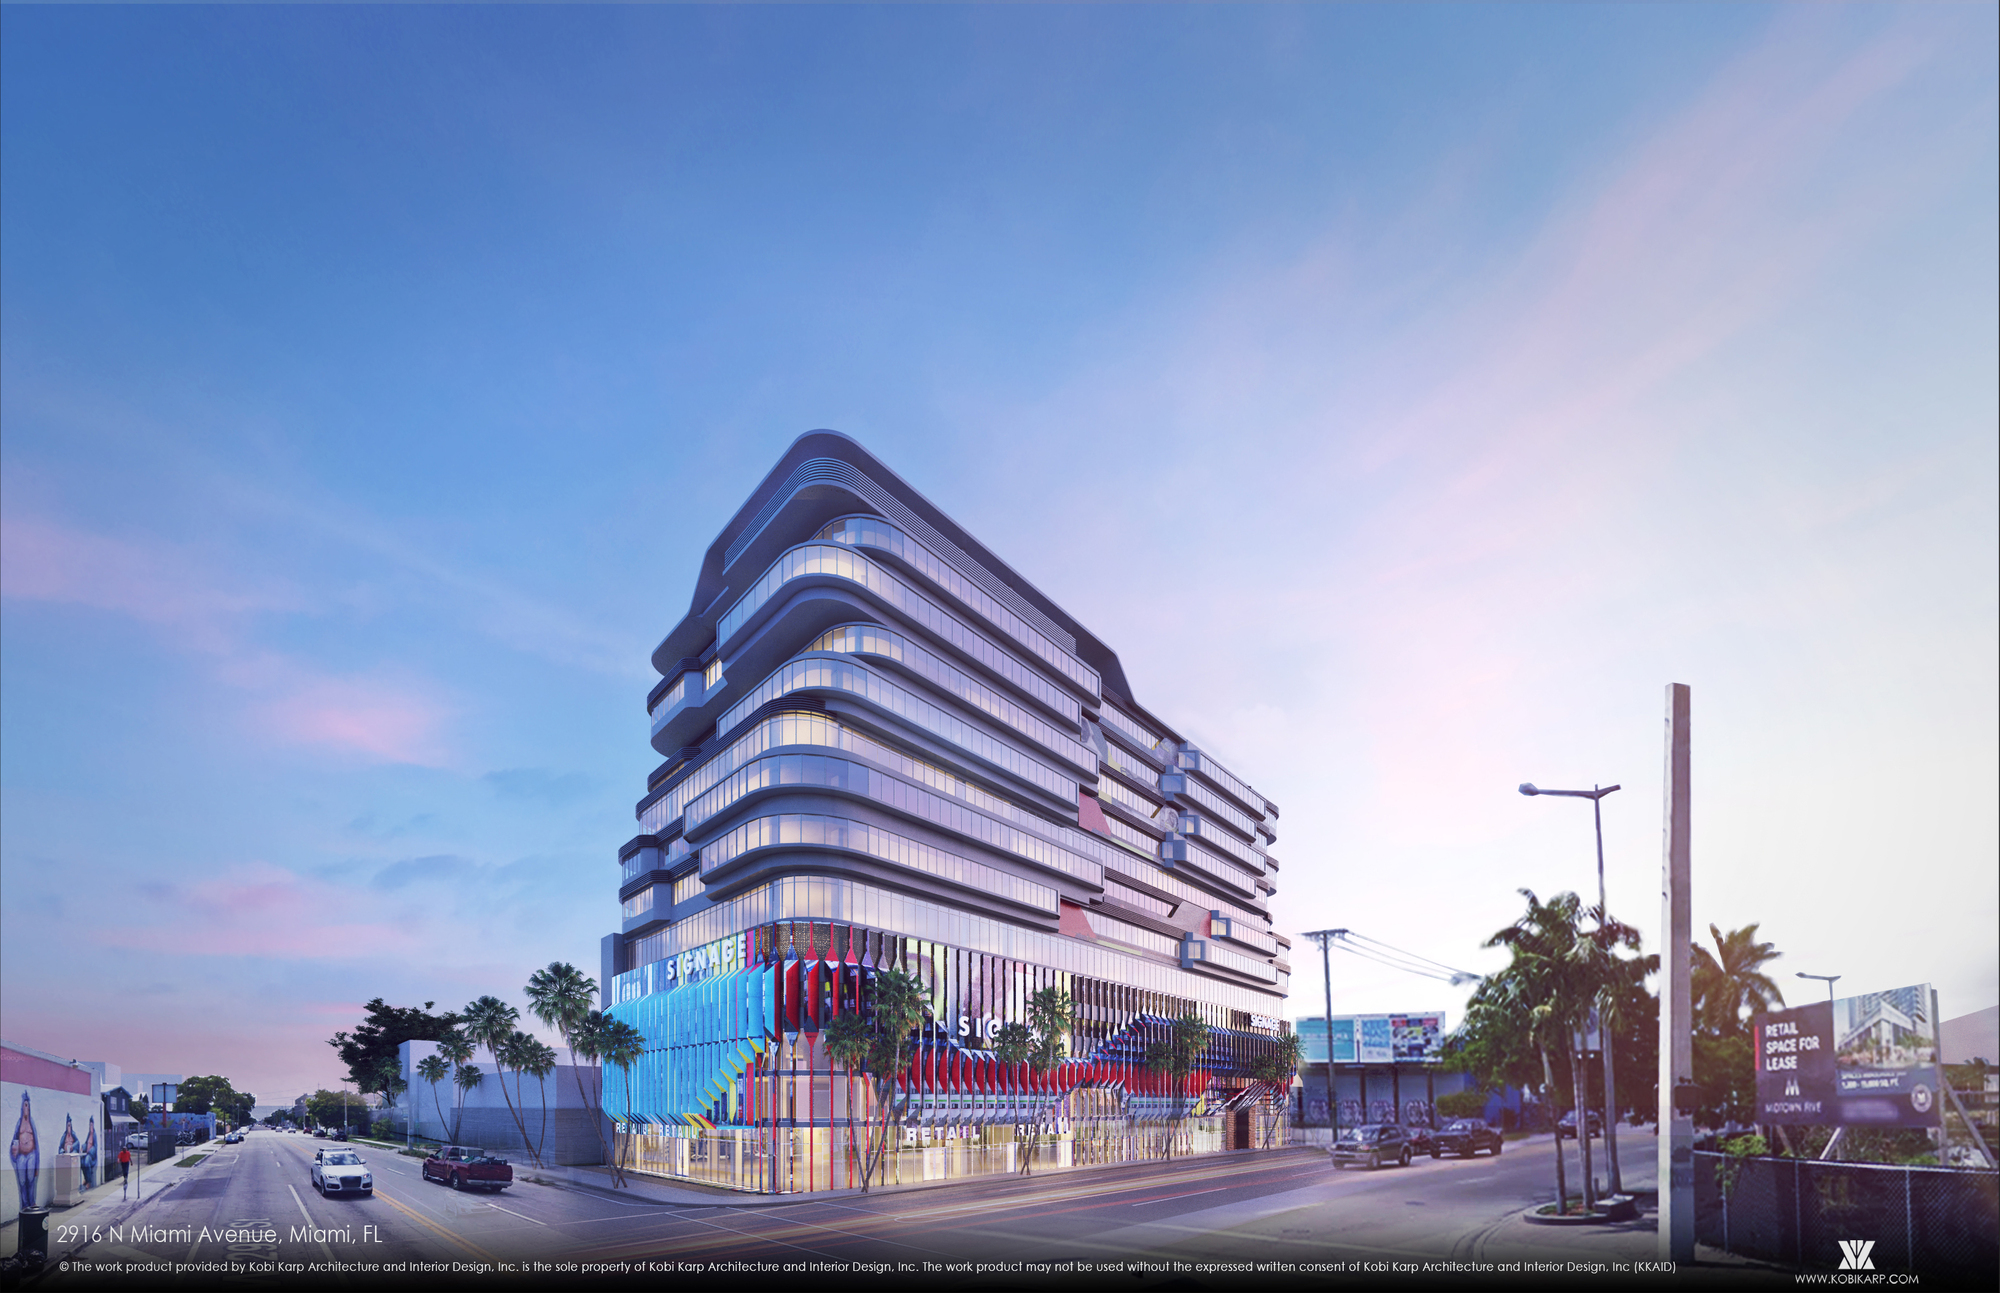 Kobi Karp S Pair Of Mixed Use Developments To Celebrate Wynwood S Culture Of Creativity In Miami Archdaily